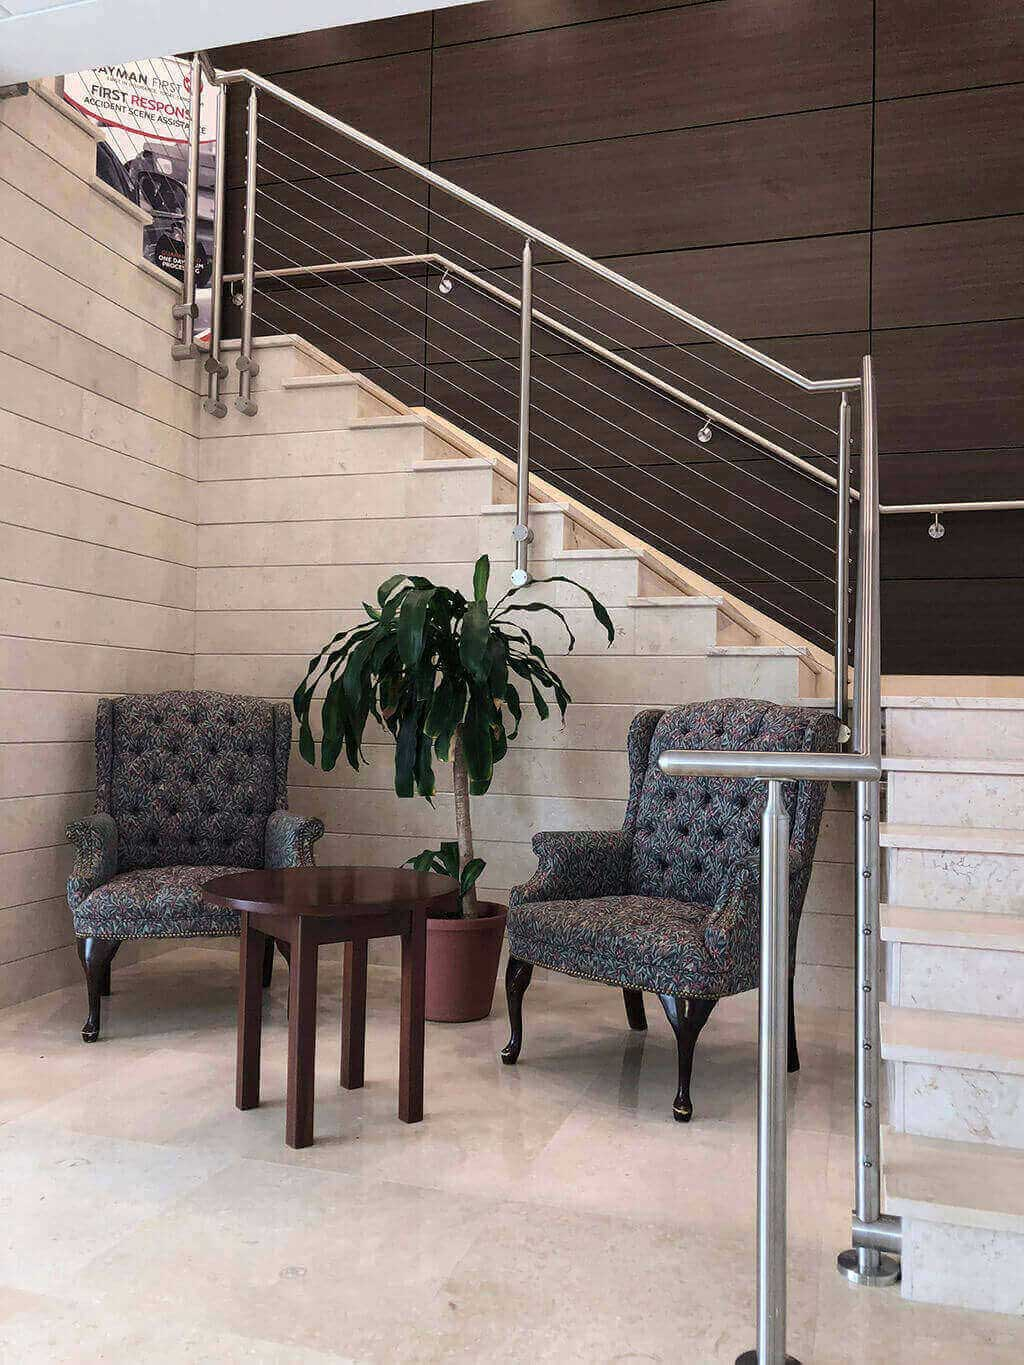 Designing and Installing Railings in Cayman Islands - Image2